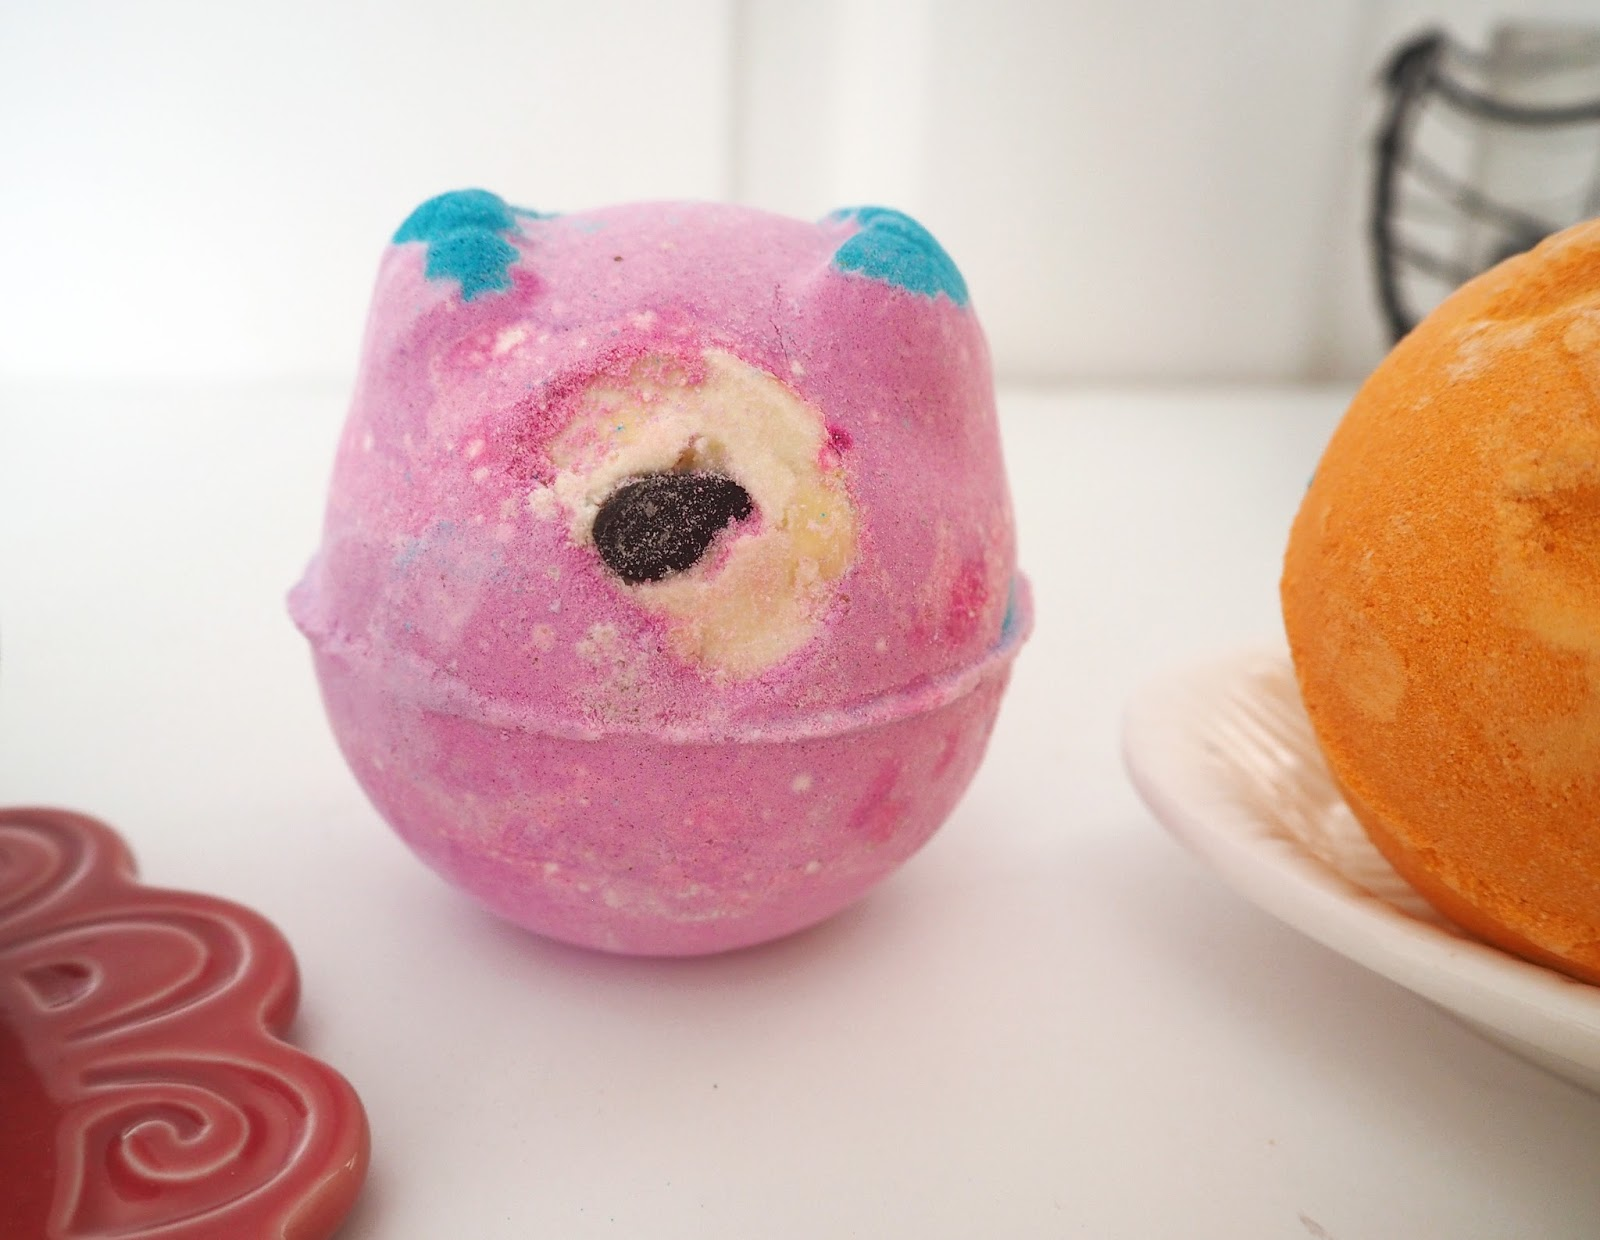 Lush Halloween Collection 2016, Katie Kirk Loves, Monsters Ball Bath Bomb, Beauty Blogger, Bath Products, Lush UK